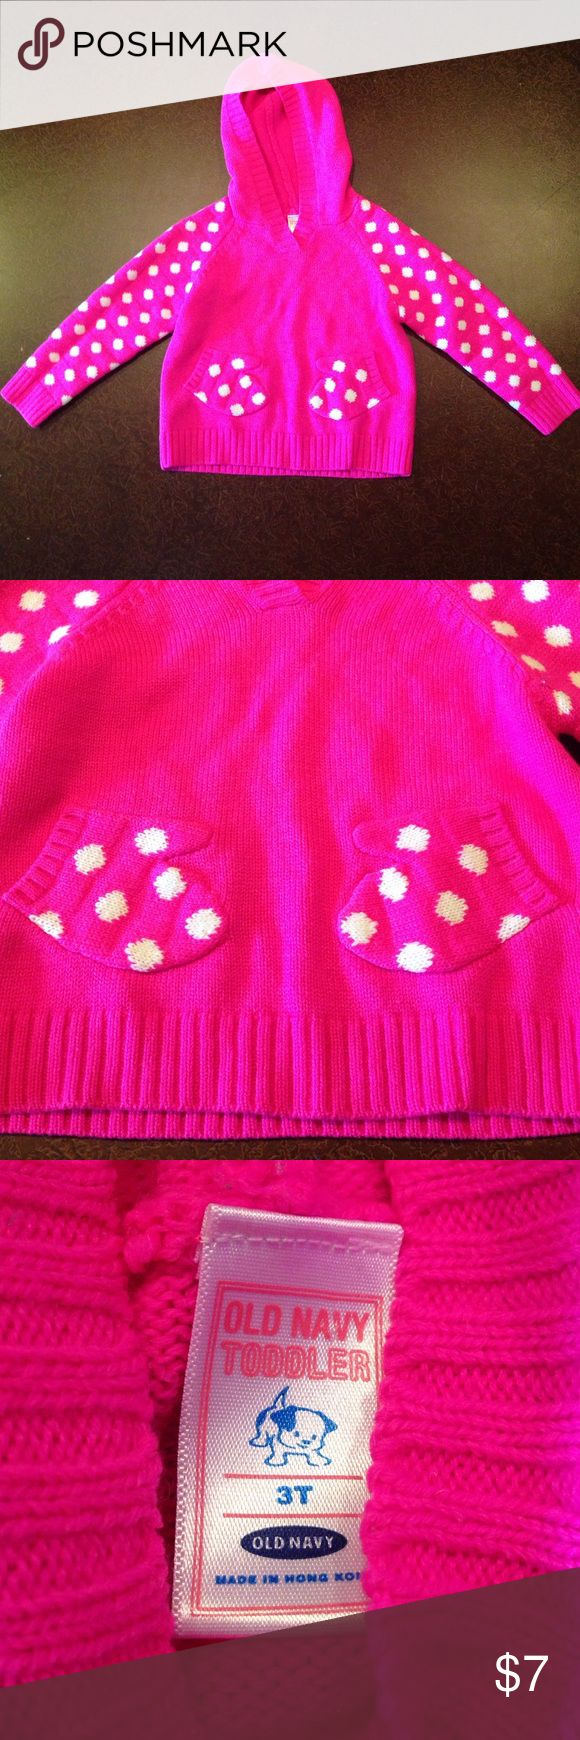 Pink Polka Dot Sweater with mitten pockets So cute! Old Navy Pink Polka Dot sweater is pink with white polka dots. Mittens in the middle are pockets. Great used condition- no flaws. Smoke Free Home. Bundle for savings! Old Navy Shirts & Tops Sweaters